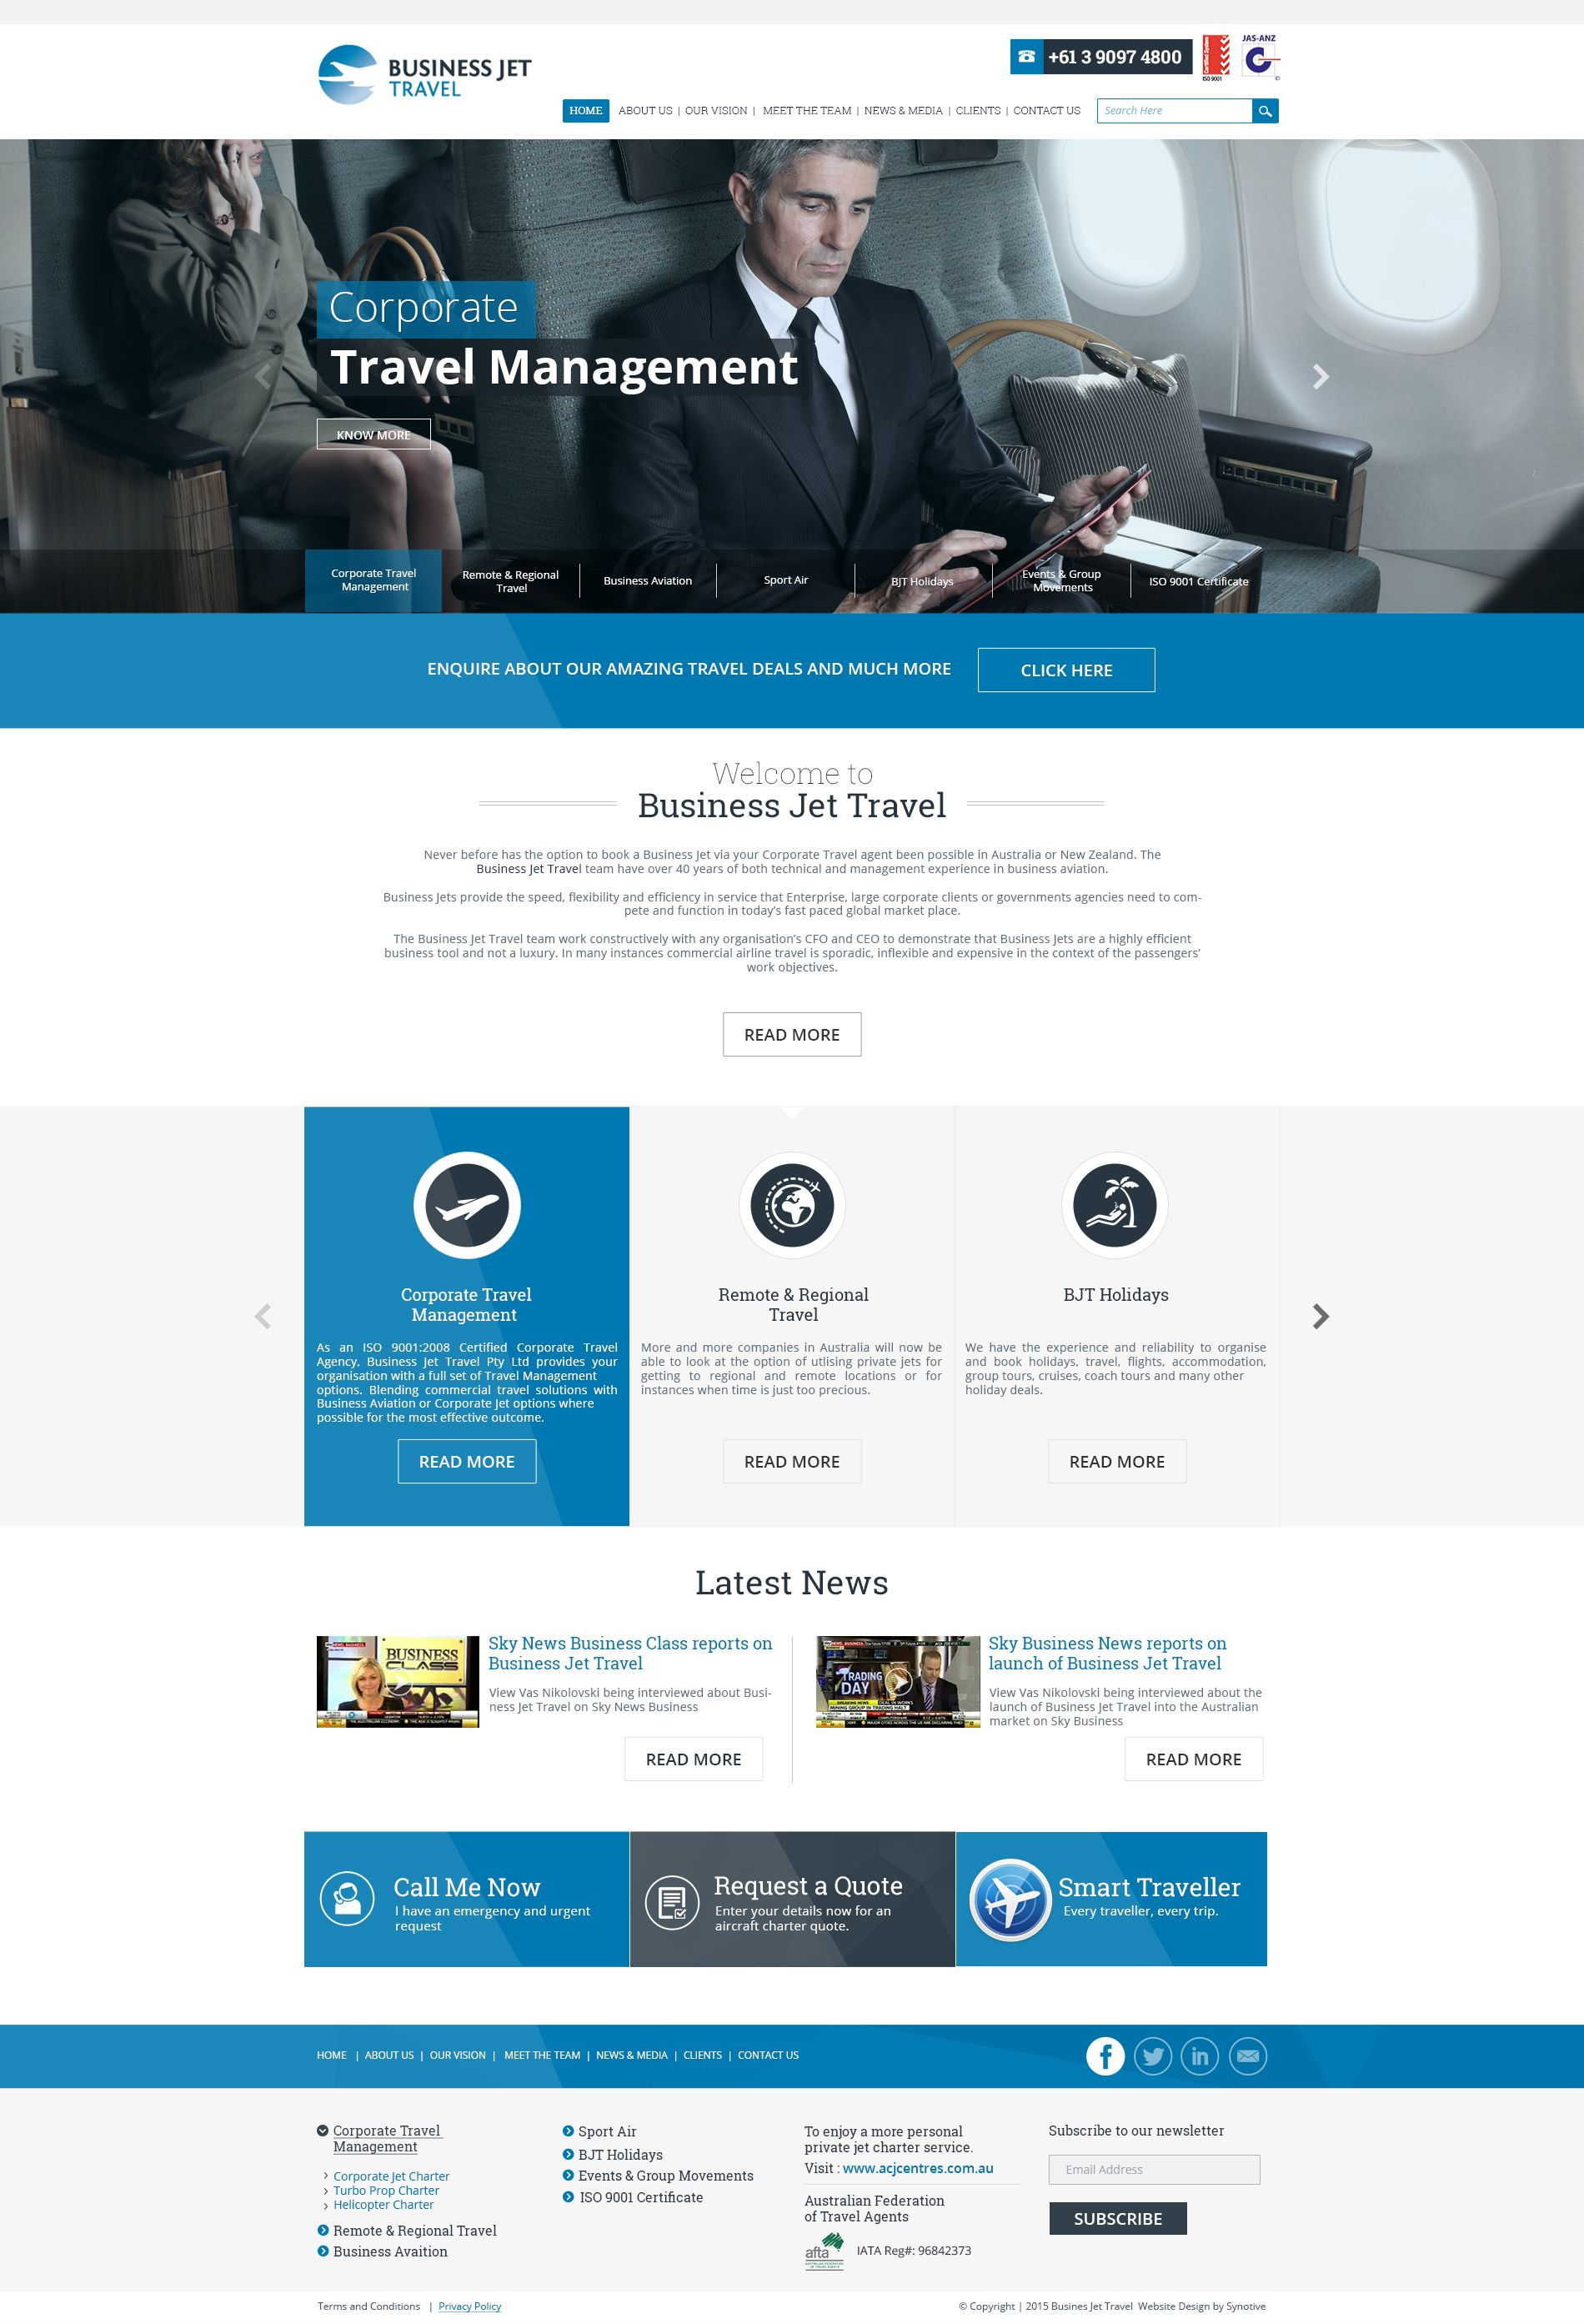 Business Jet Travel - BJT Travel Management | Web Design Projects ...